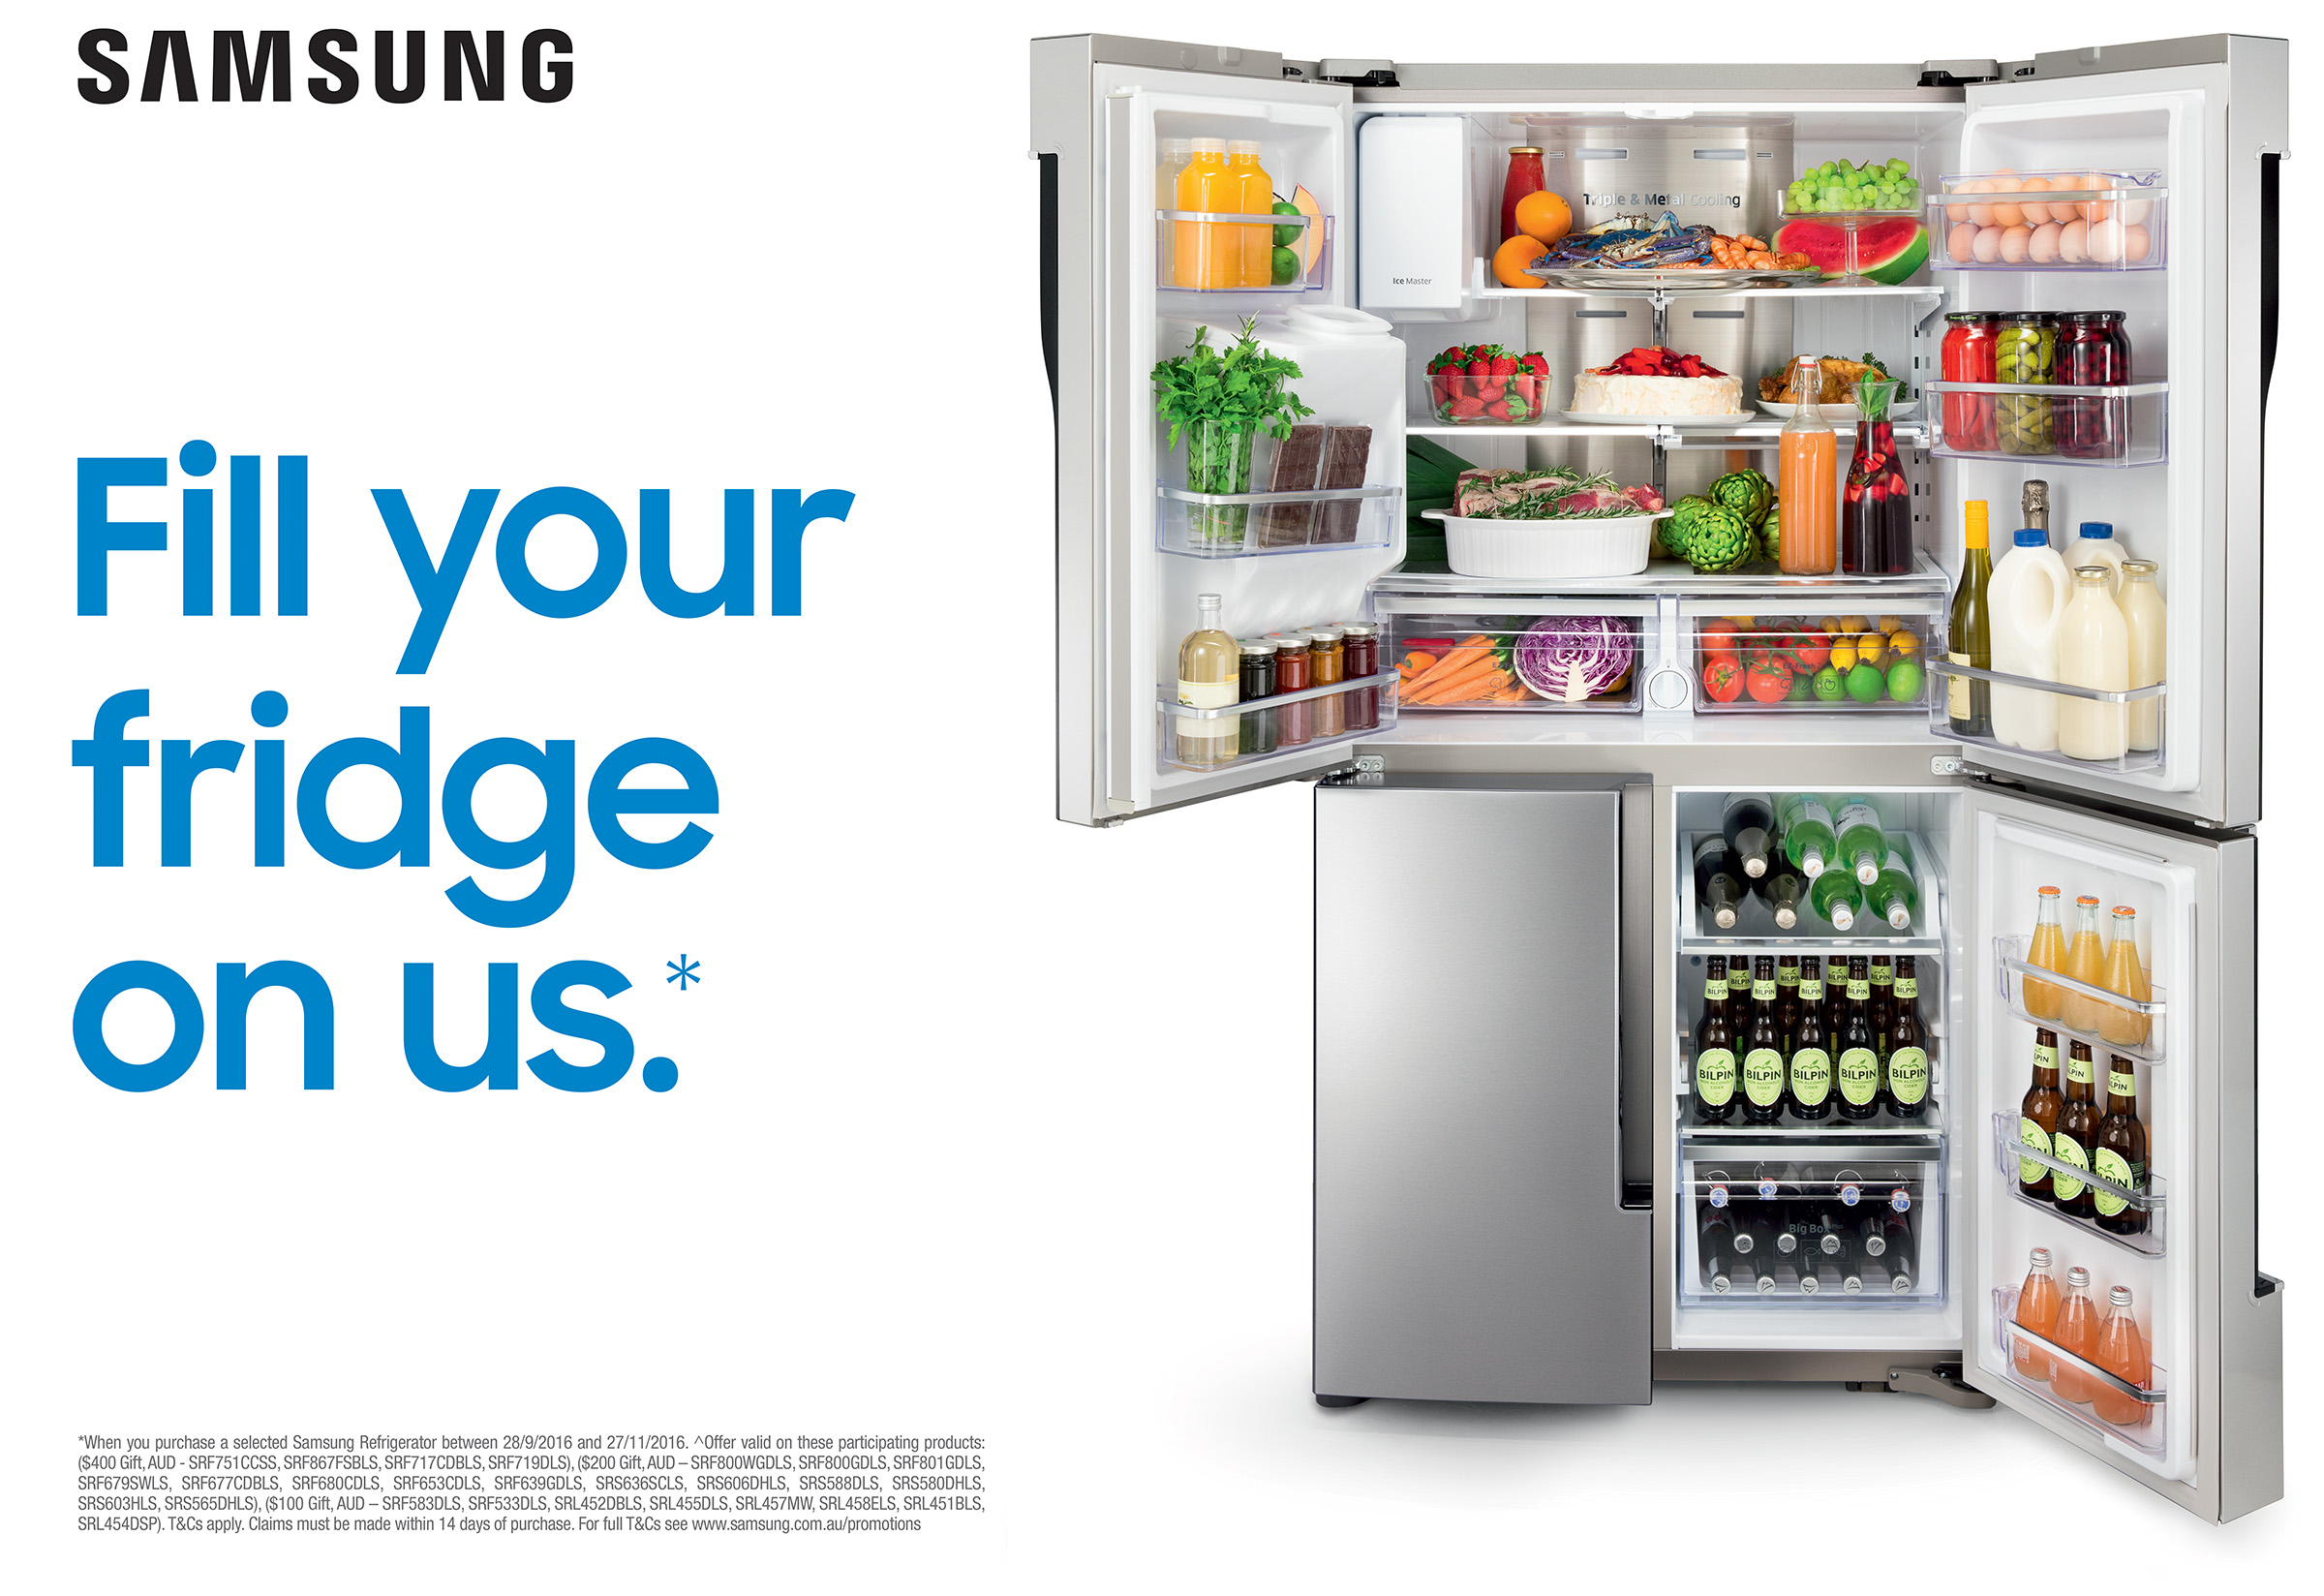 Advertising photography of Samsung fridge filled with delicious food and drinks